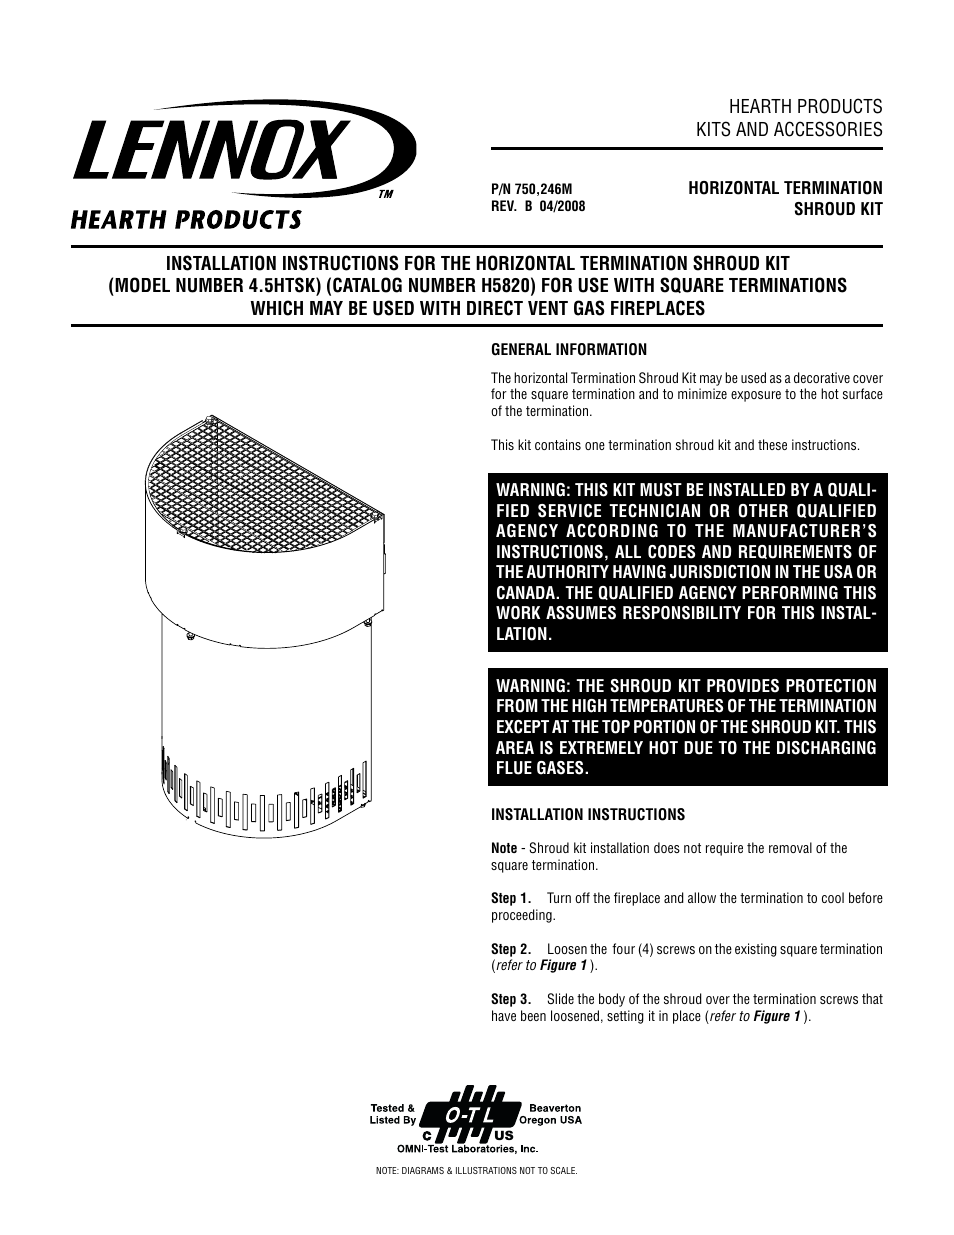 Lennox Hearth H5820 User Manual 2 pages